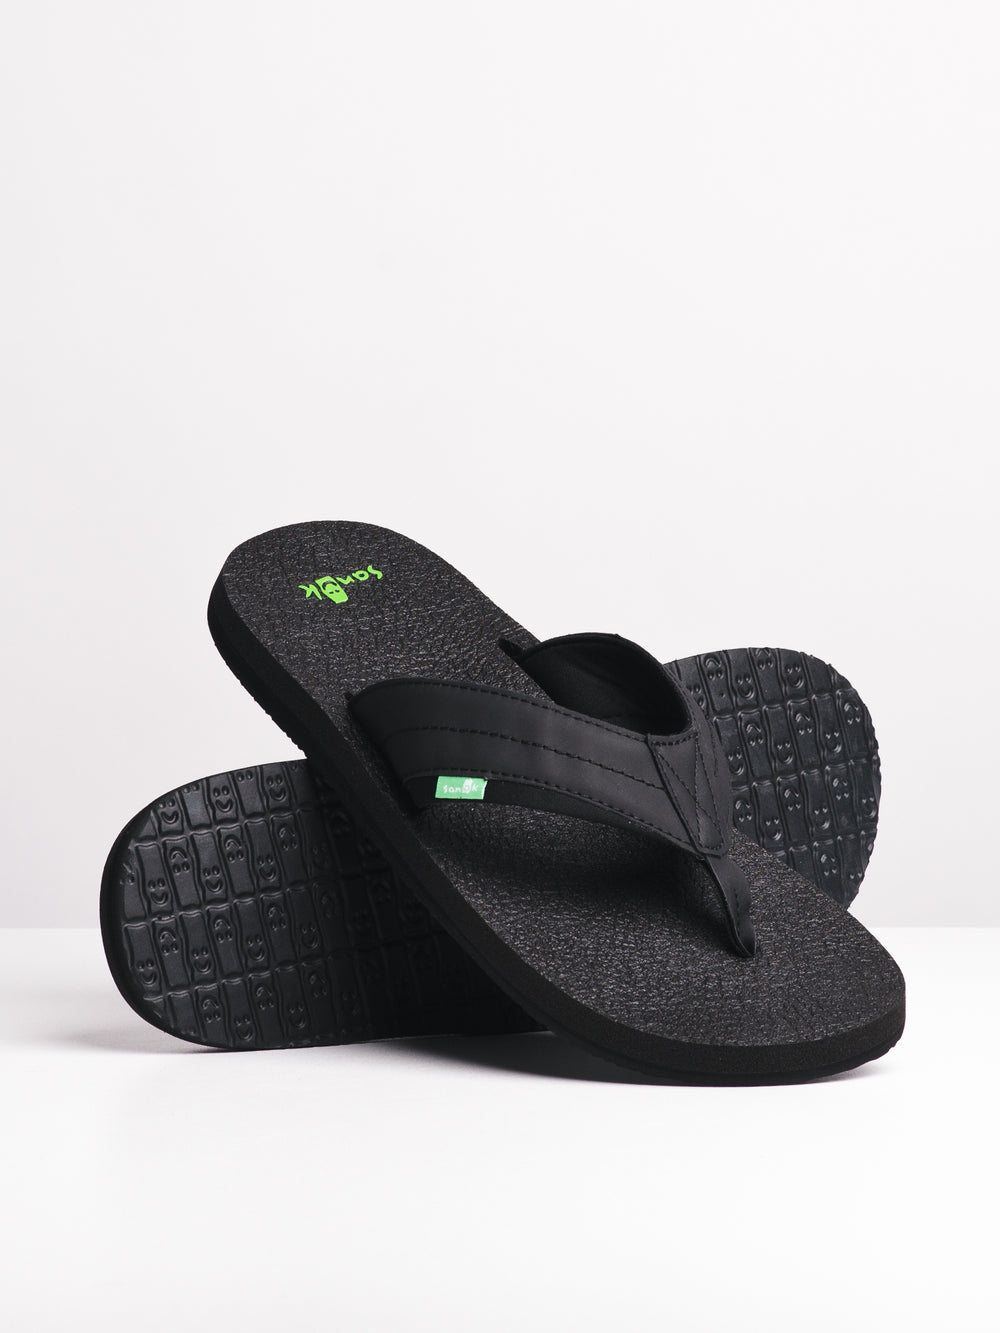 MENS BEER COZY II BLACK SANDALS